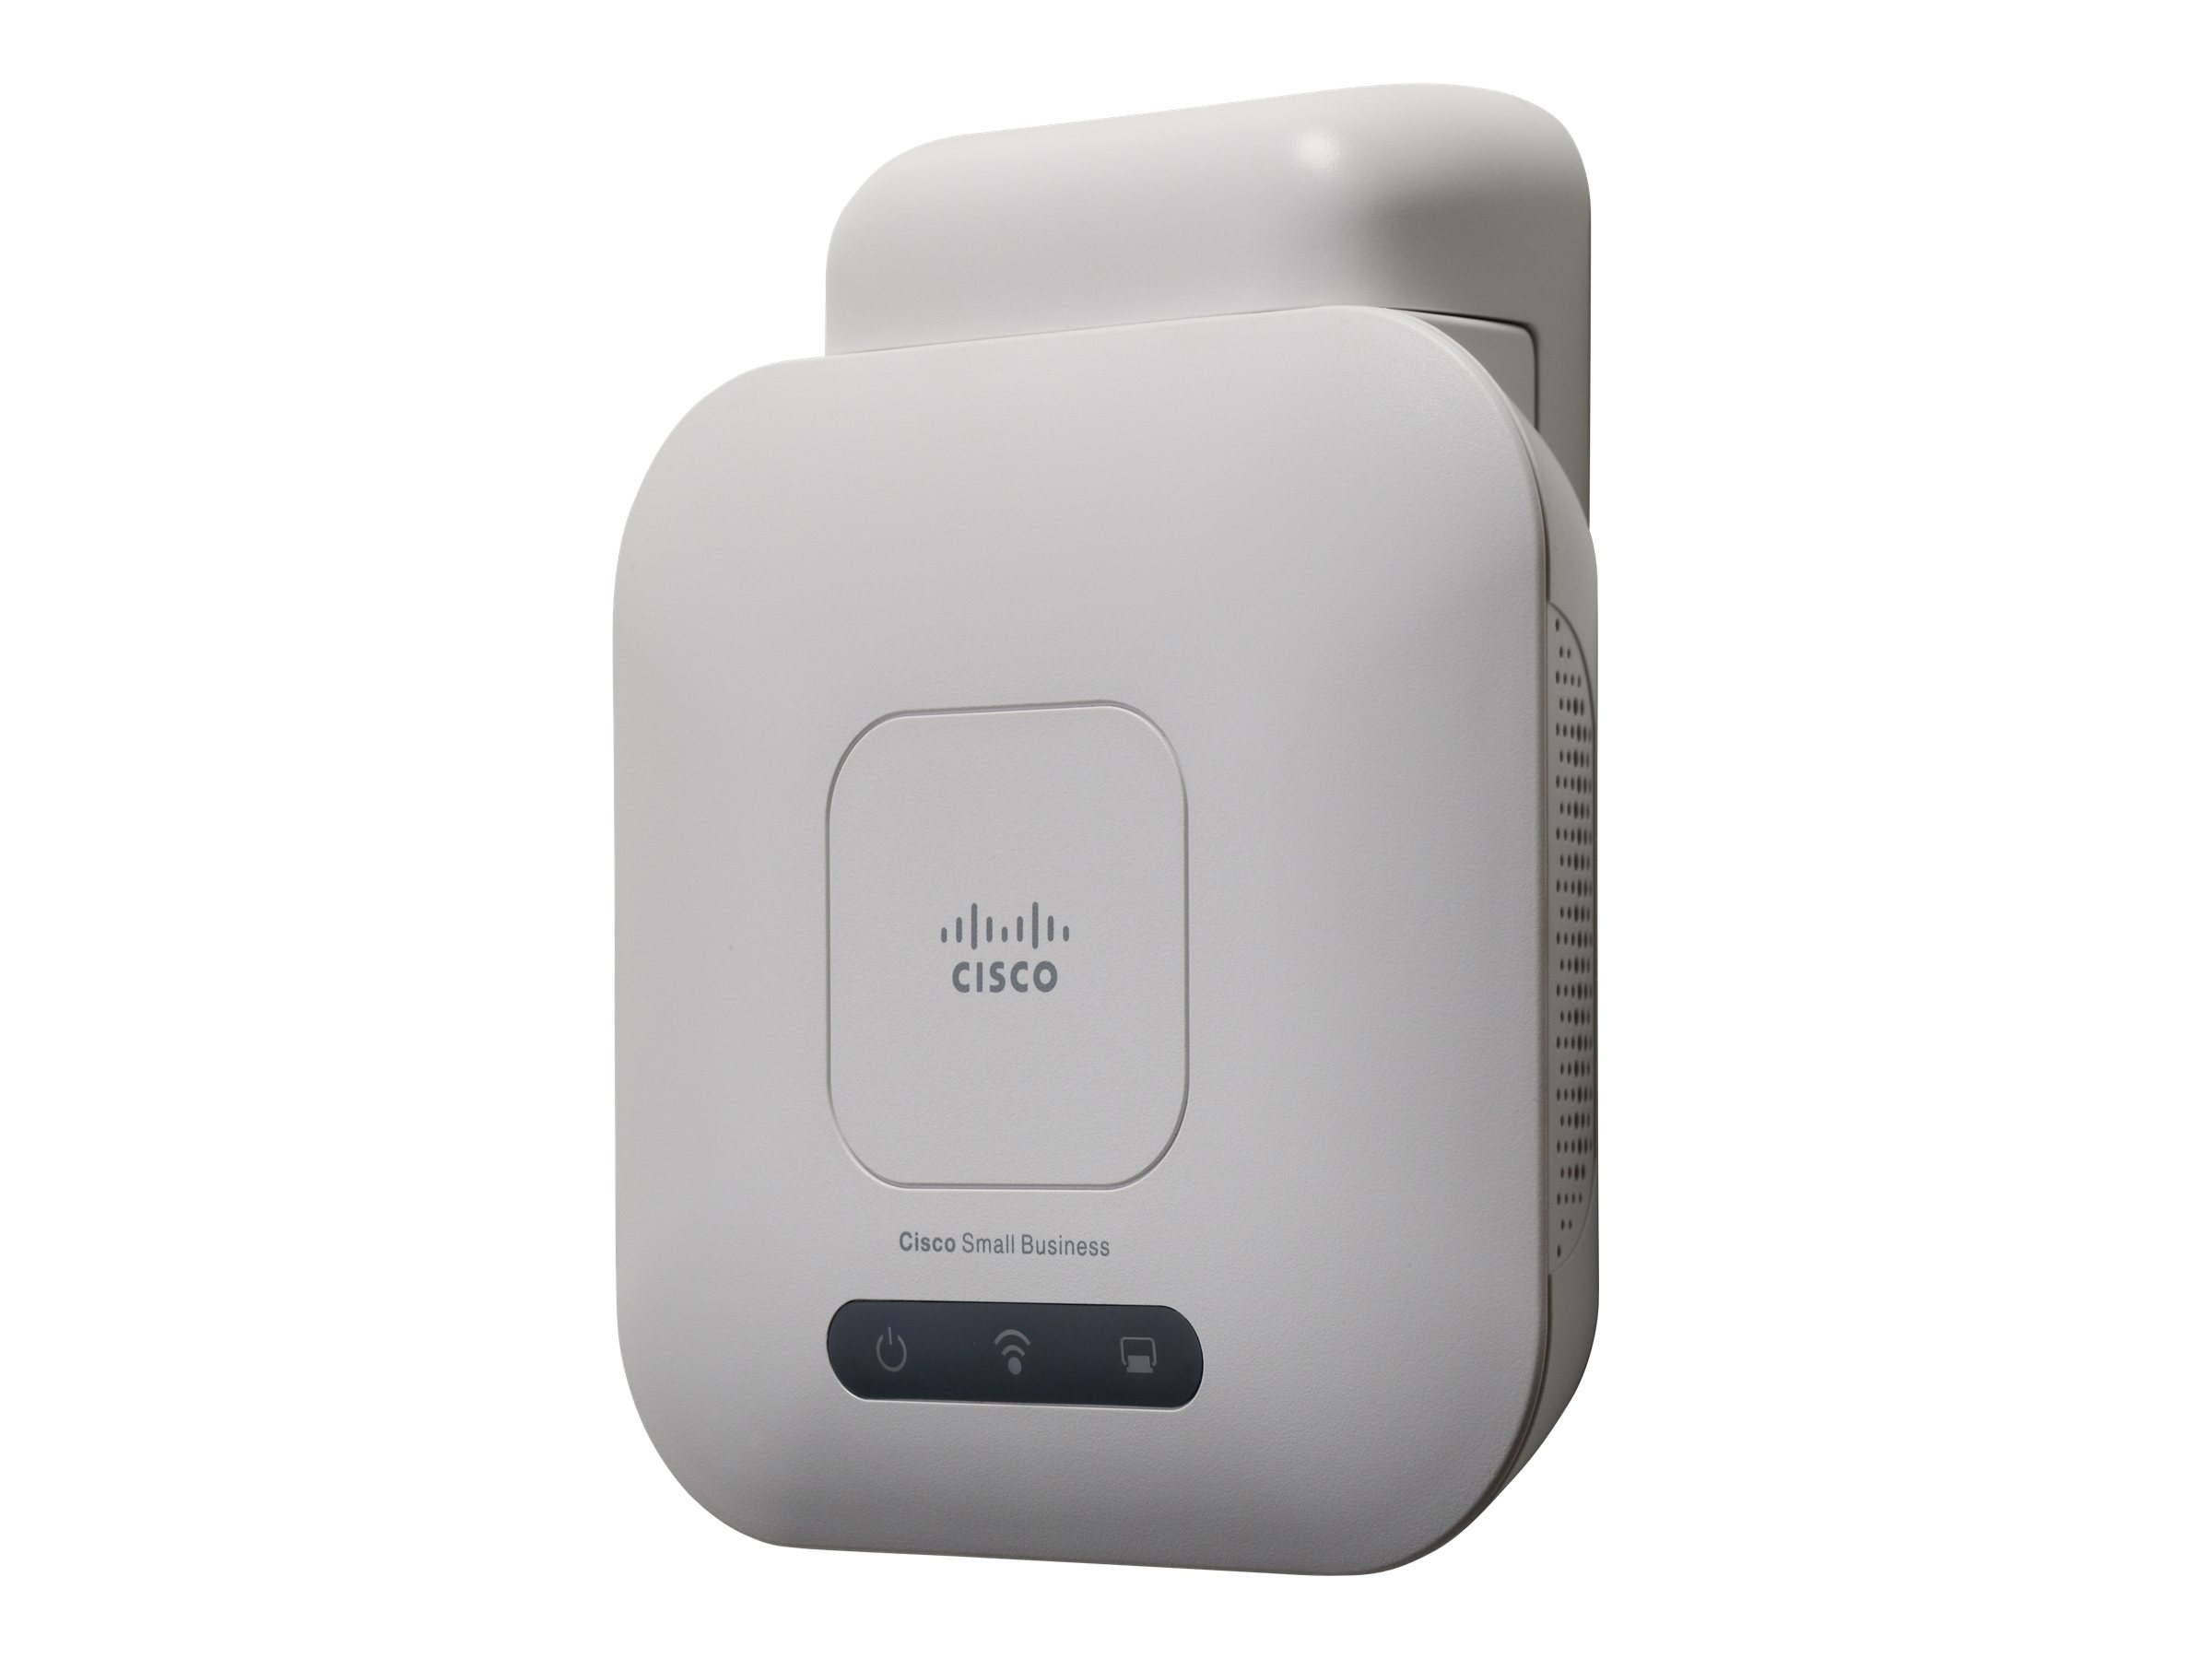 Cisco Small Business WAP121 - Drahtlose Basisstation